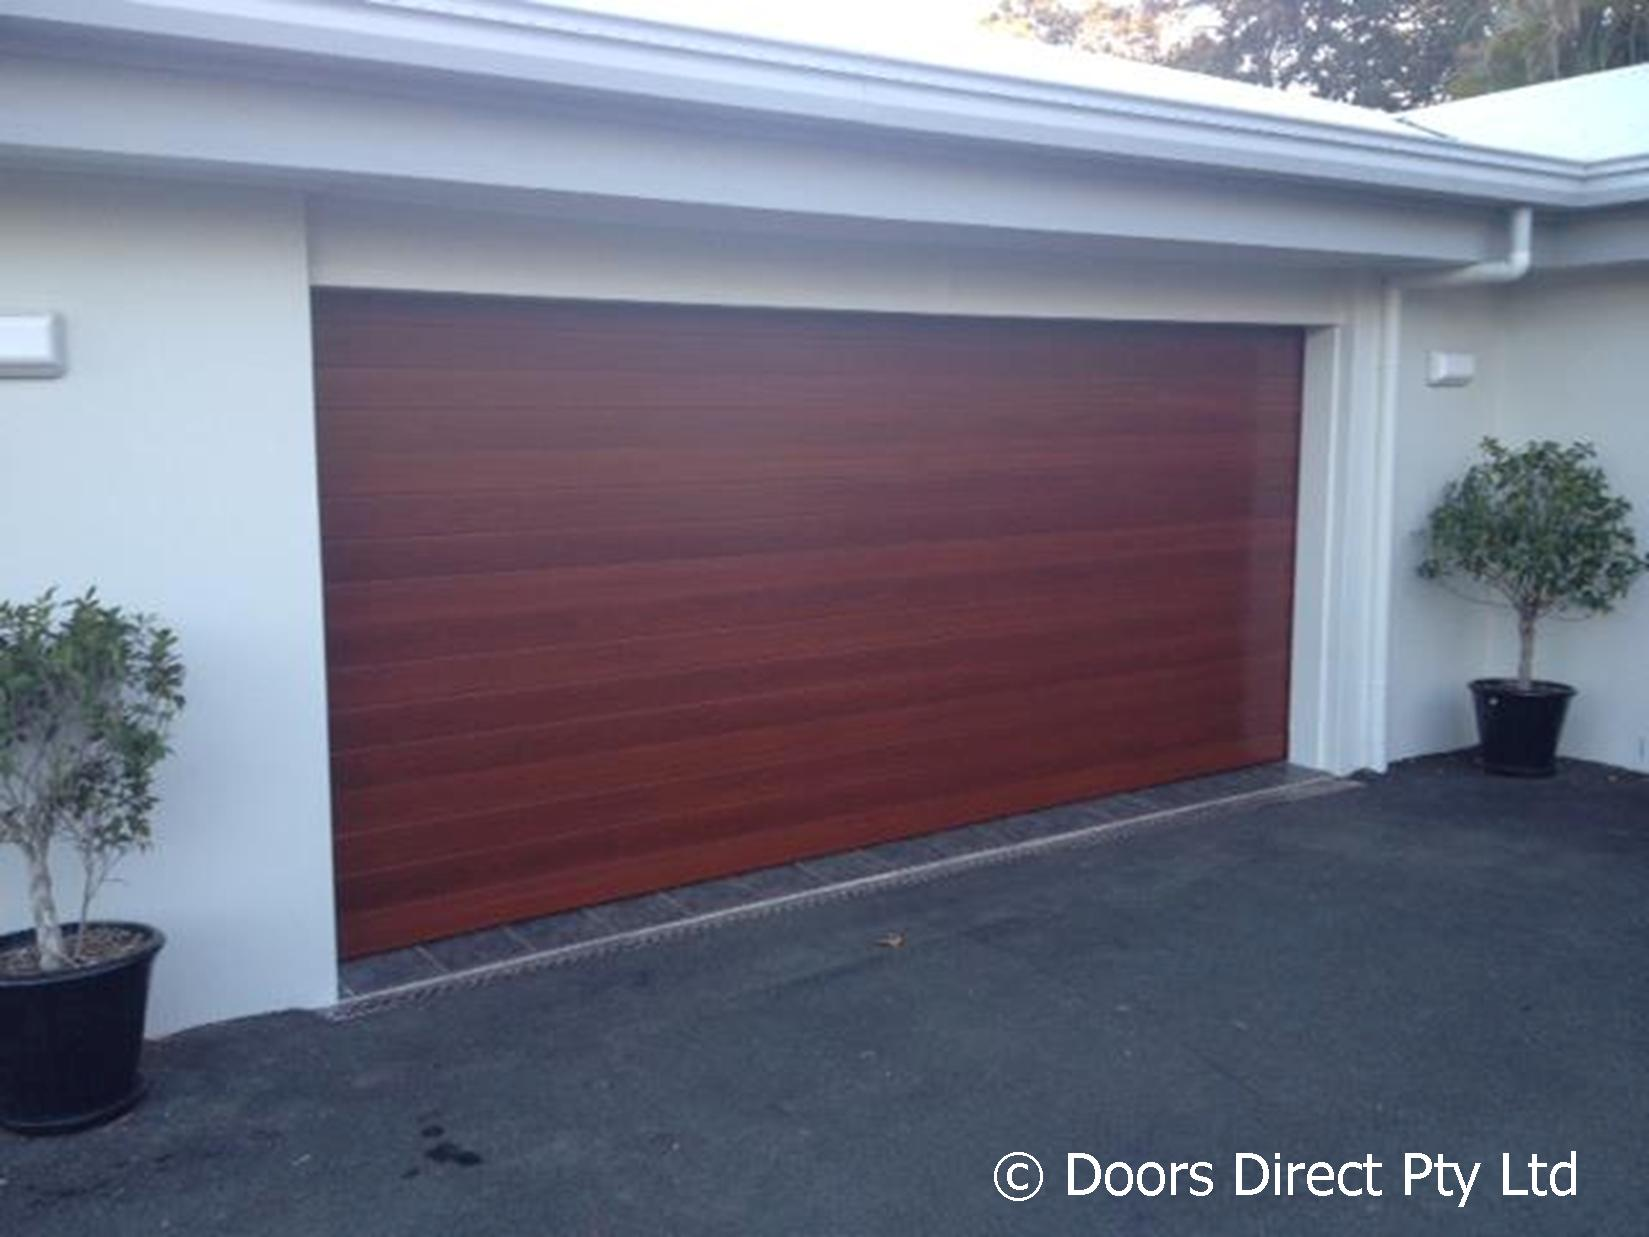 1237 #41628A Seville Sectional Timber Coat Jarrah Colour pic Residential Garage Doors Direct 38211649